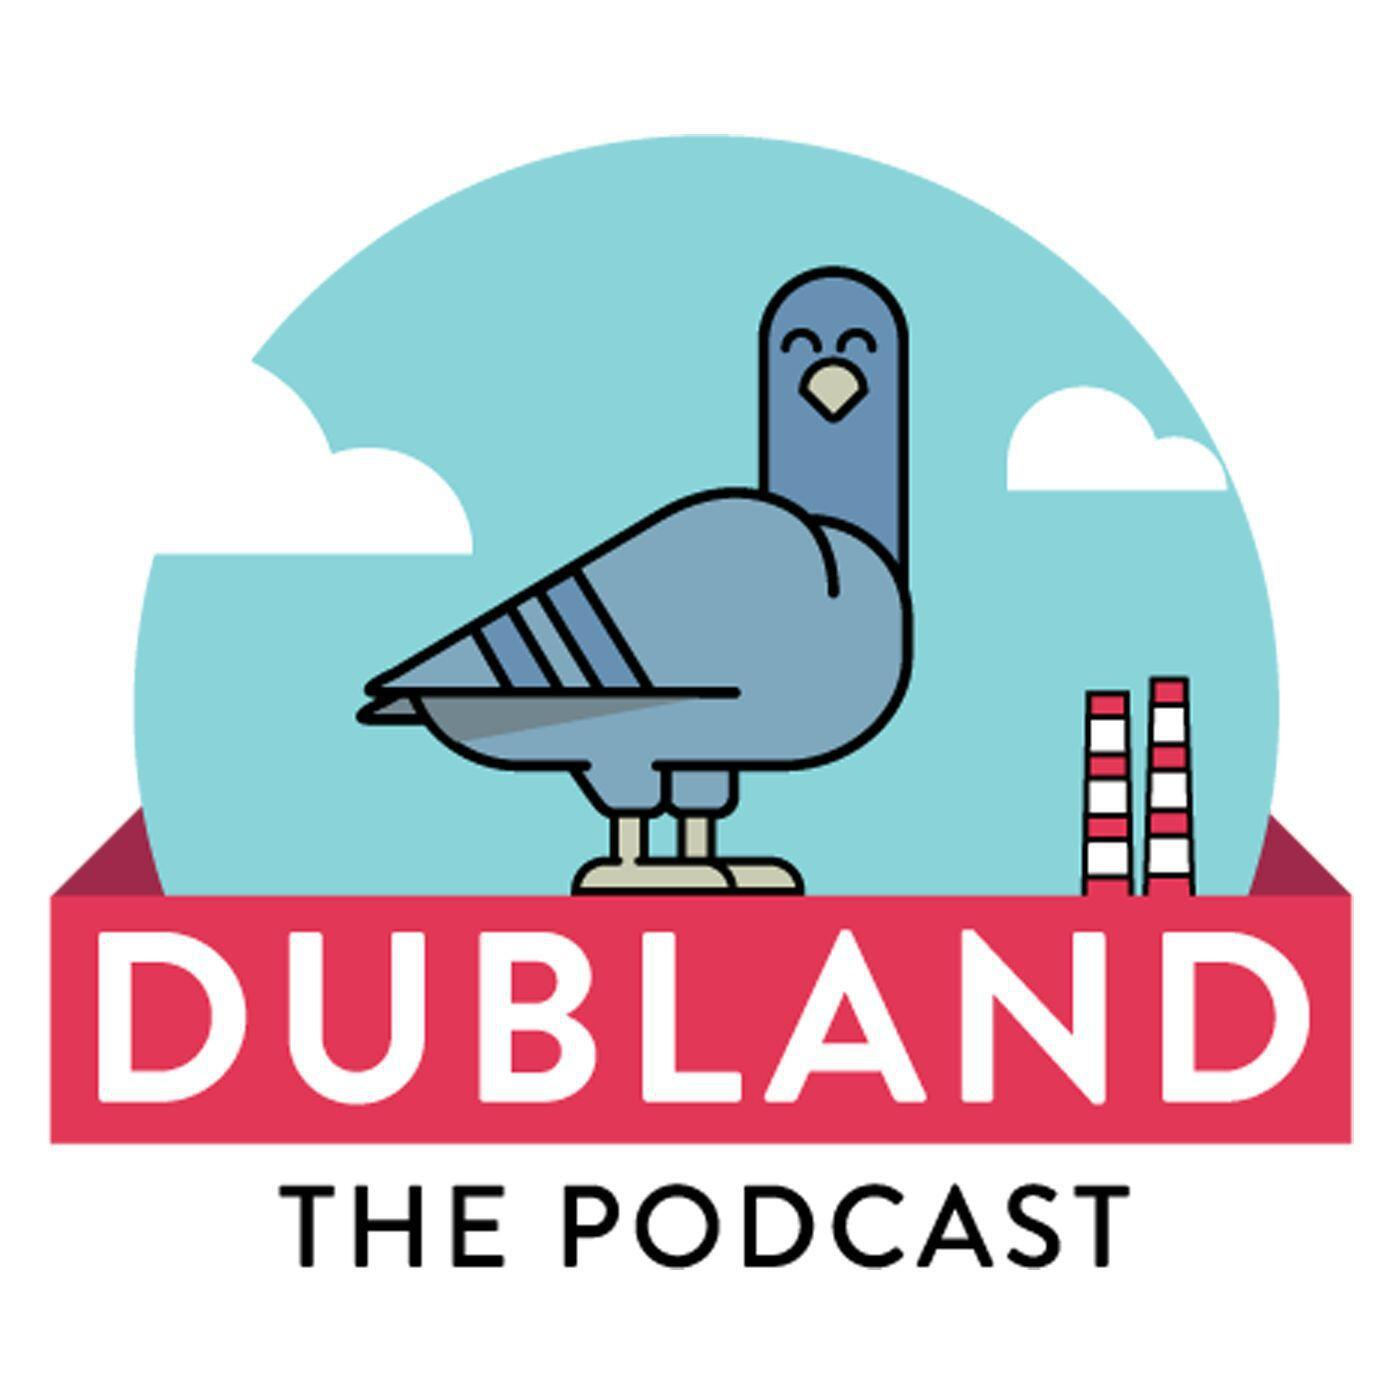 67 DUBLAND The Podcast